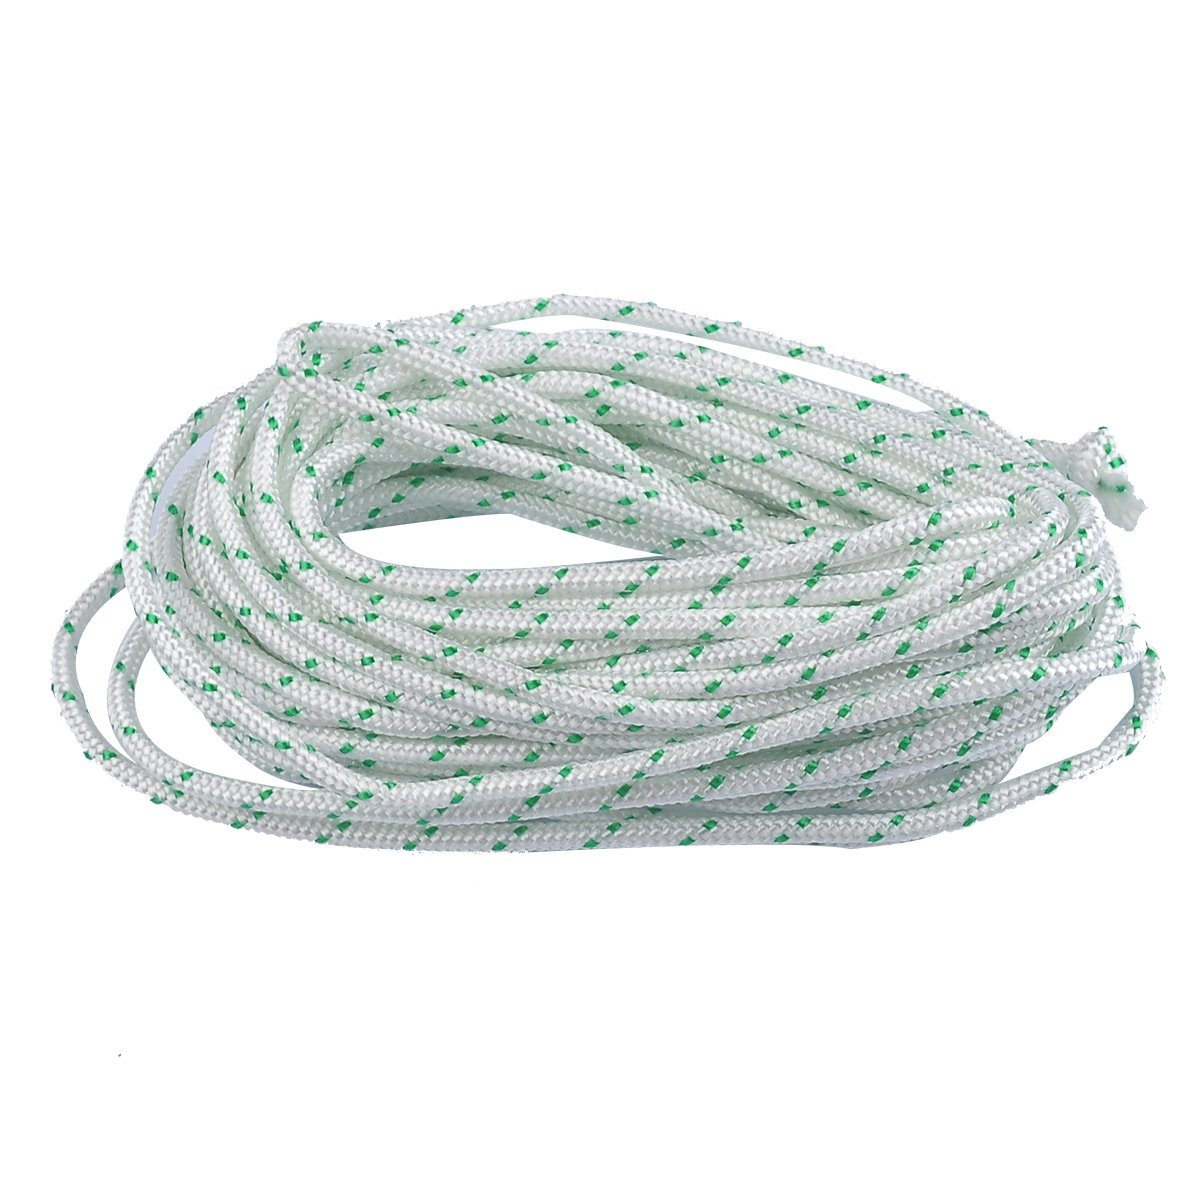 HIPA 4.5mm Recoil Starter Rope / Pull Cord for STIHL Husqvarna Poulan Chainsaw / String Trimmer /